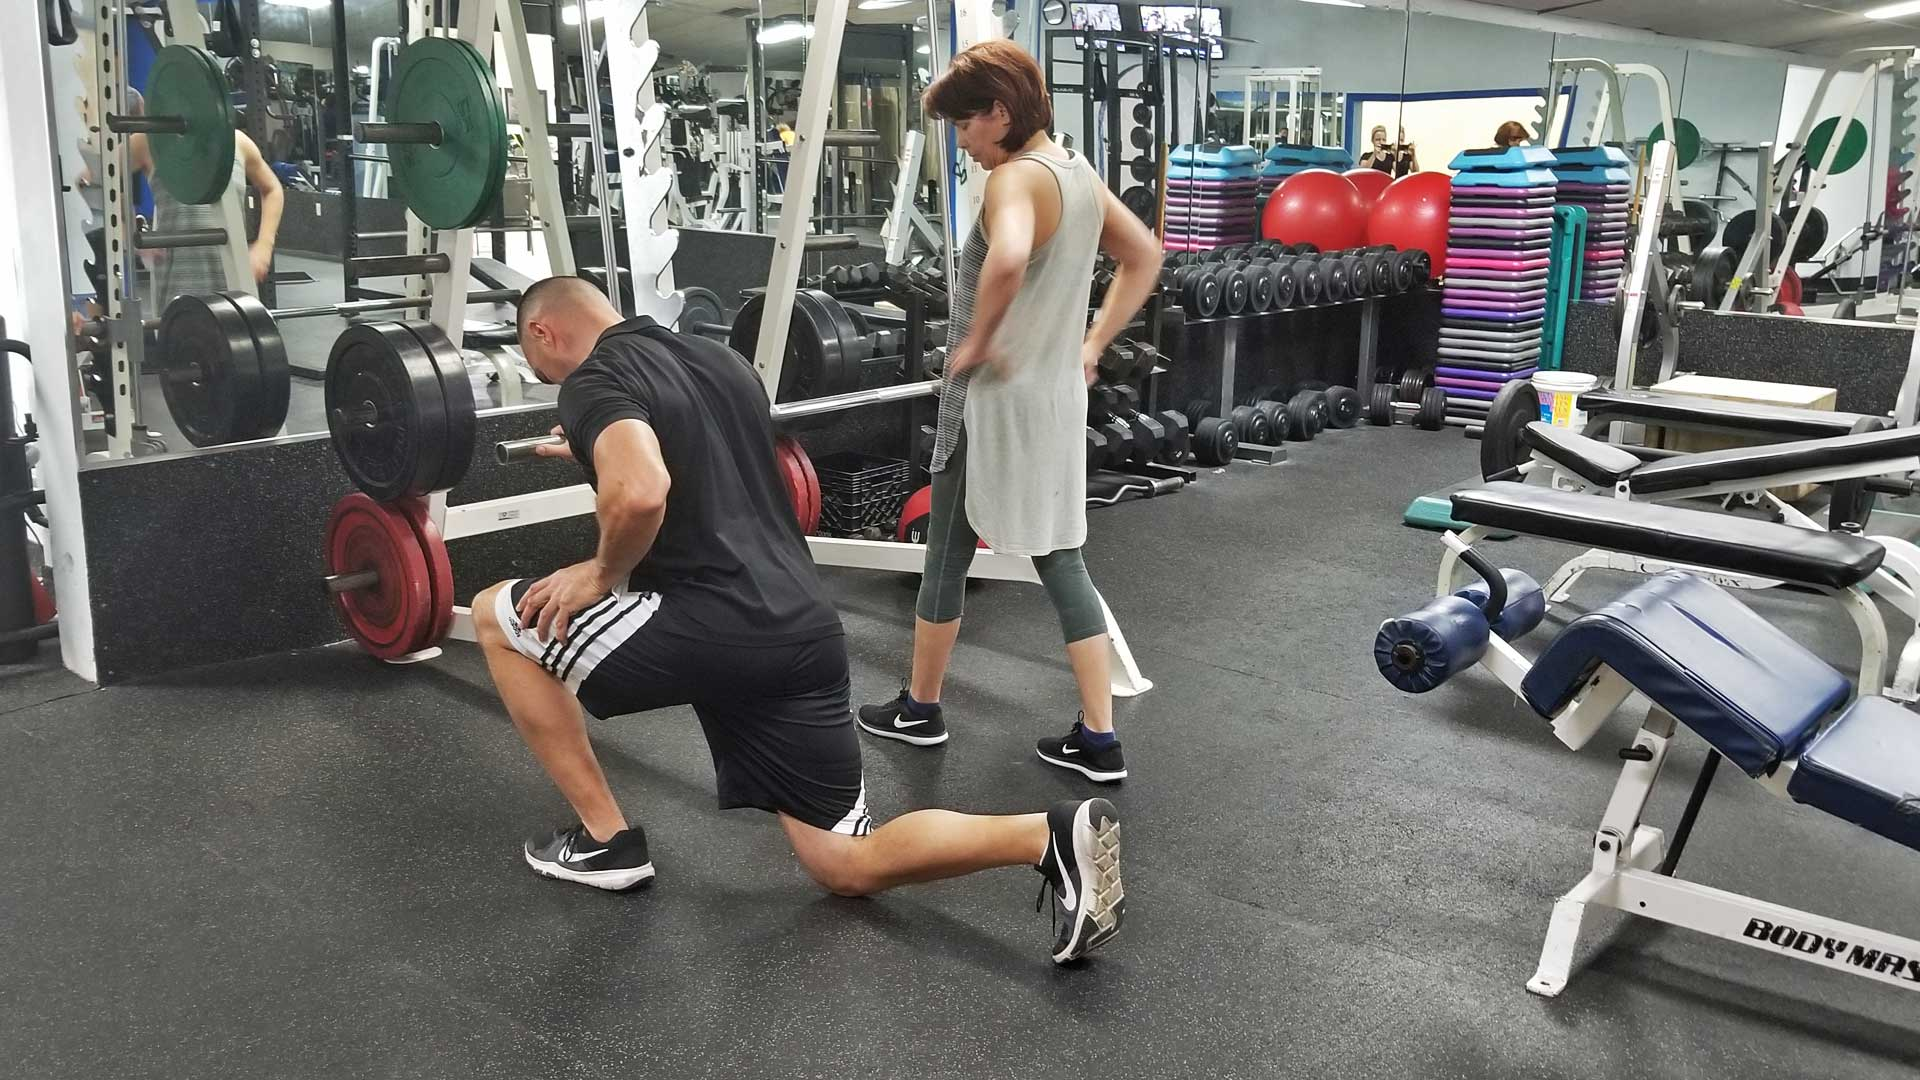 Personal trainer, Francois Tort teaching a client the proper way to do a reverse lunge in Ruskin, FL.